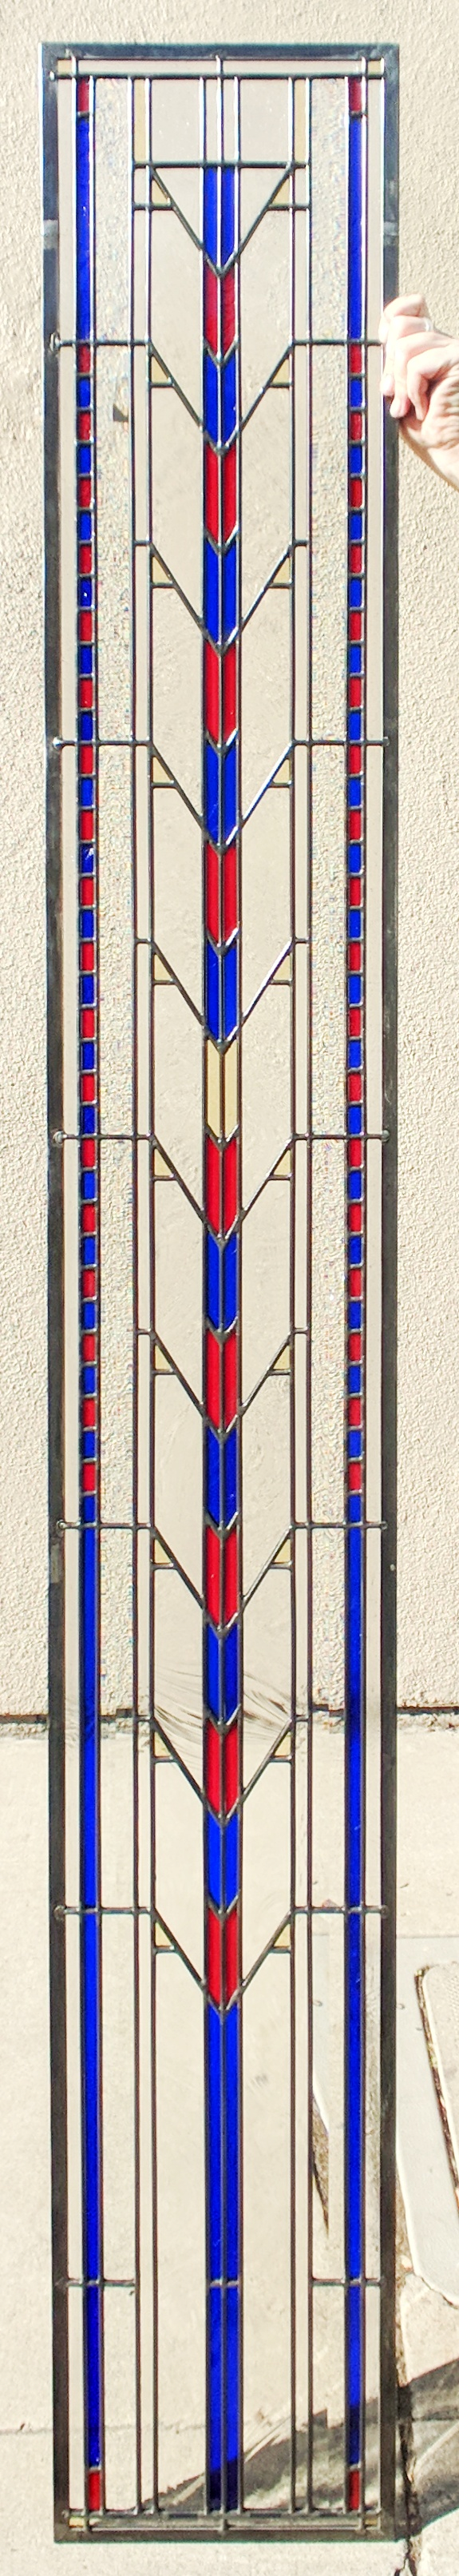 stained glass leaded glass design legacy glass studios menlo park bay area california custom design modern craftsman frank lloyd wright baroque seedy bevels prism rough rolled cathedral glass sidelight.JPG